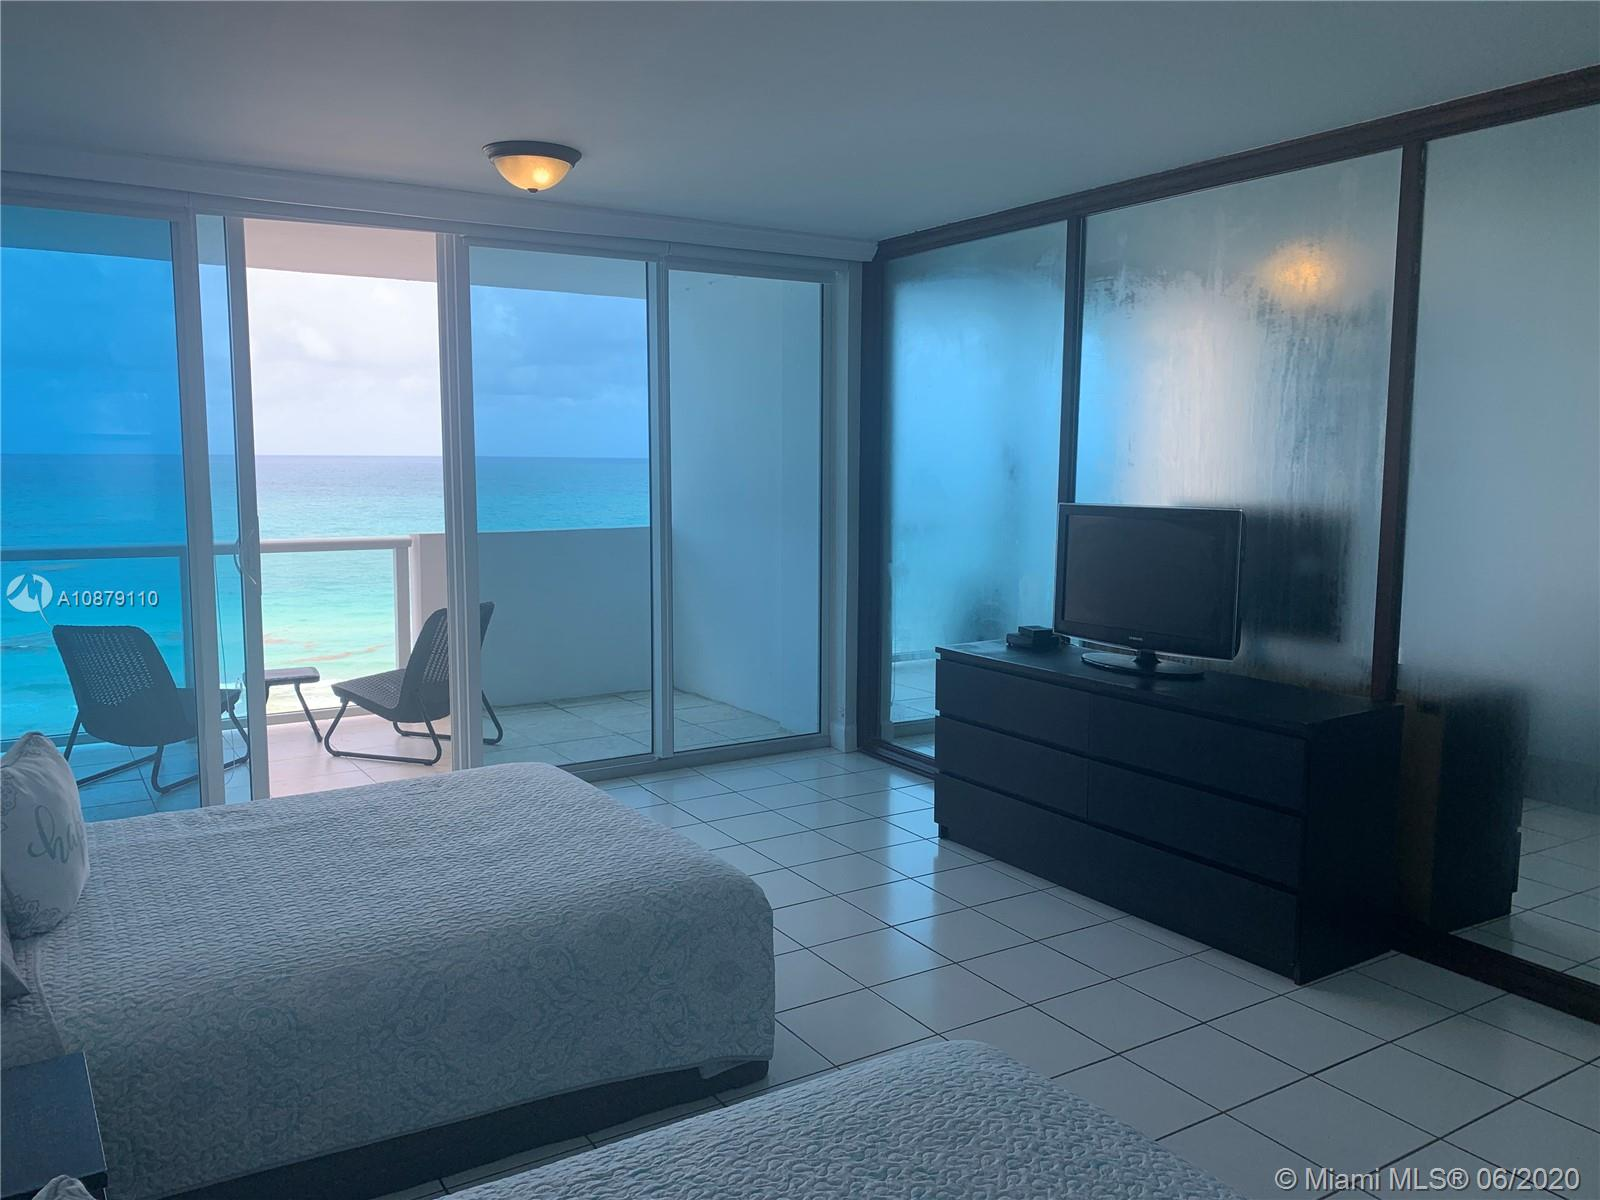 Thumbnail - 5445 Collins Ave # 729, Miami Beach FL 33140